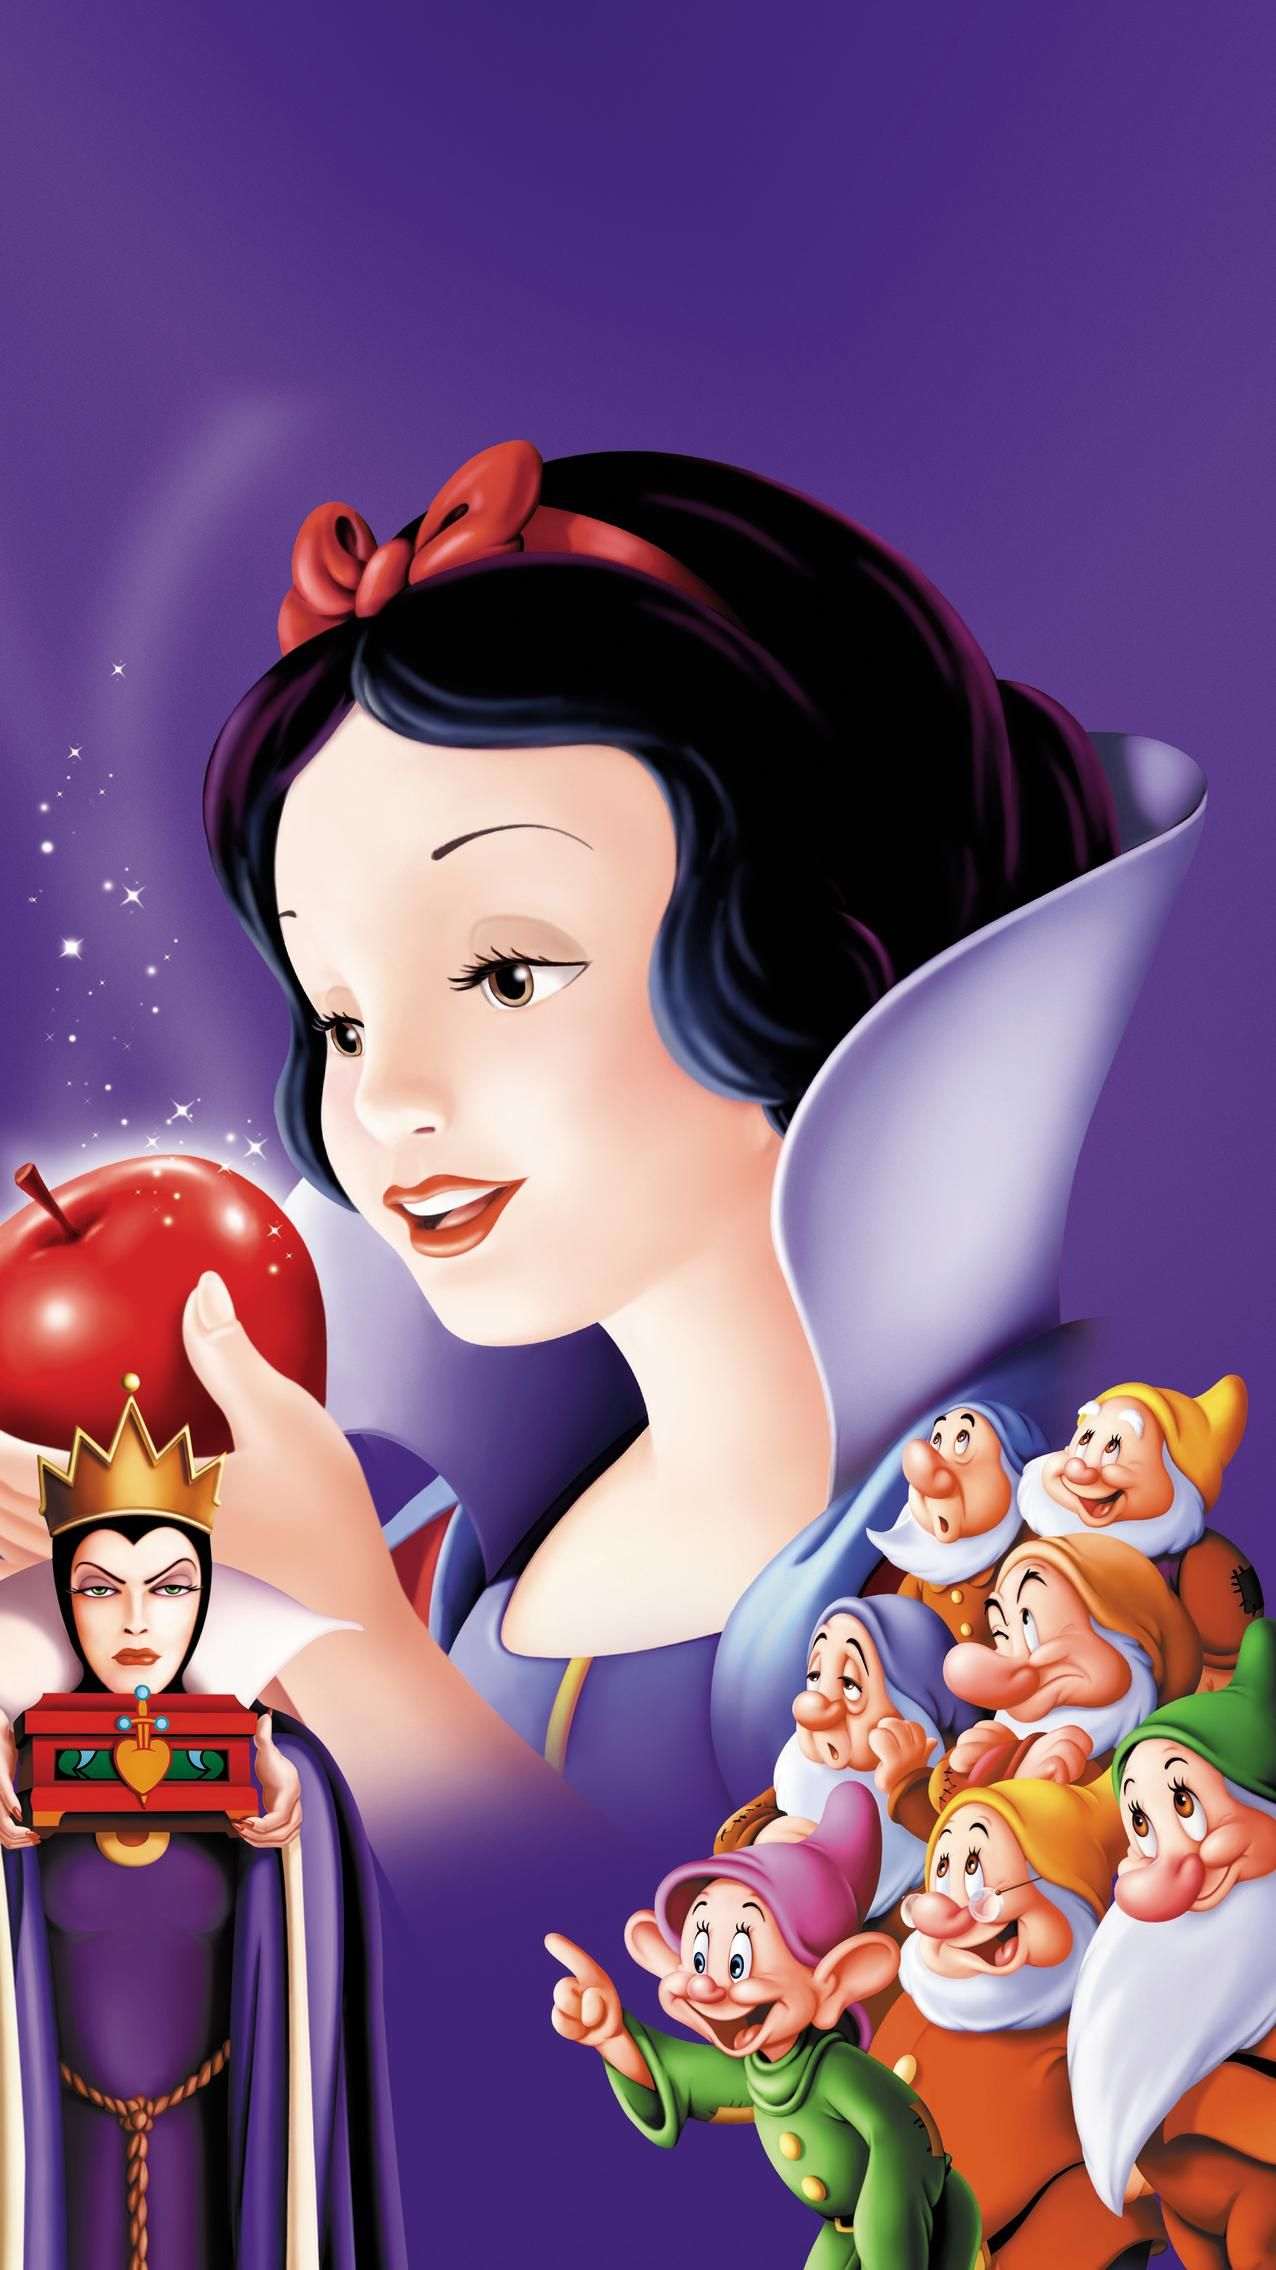 Snow White and the Seven Dwarfs (1937) Phone Wallpaper in